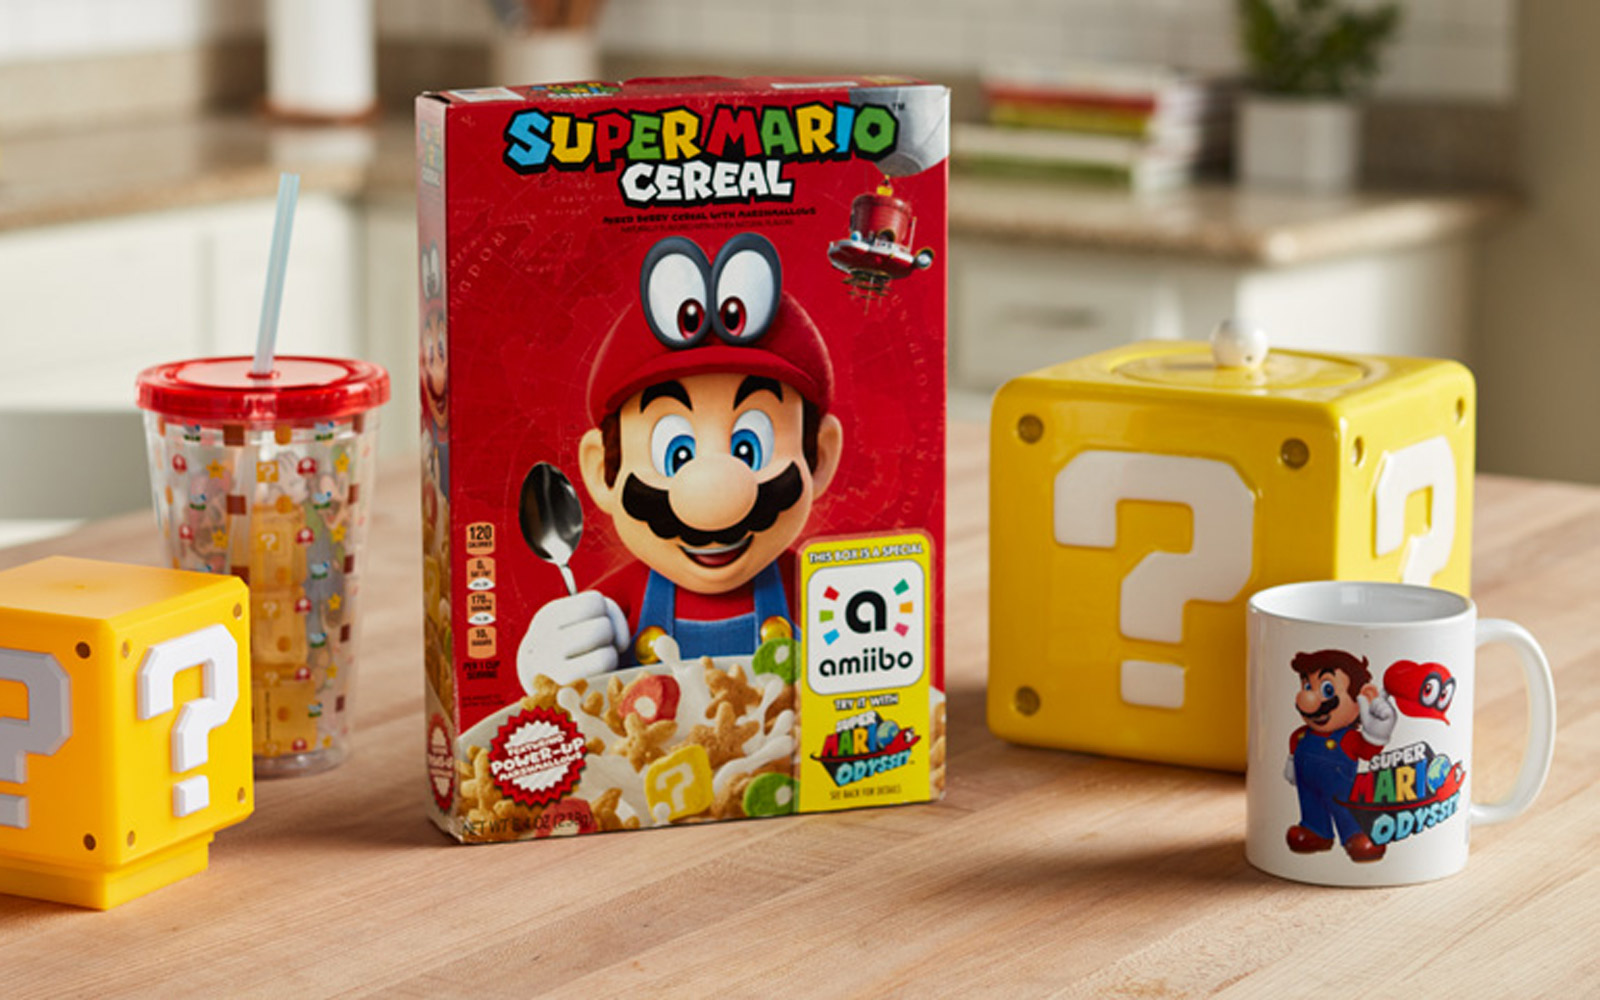 Super Mario Cereal Is Finally Here to Take Your Breakfast to the Next Level